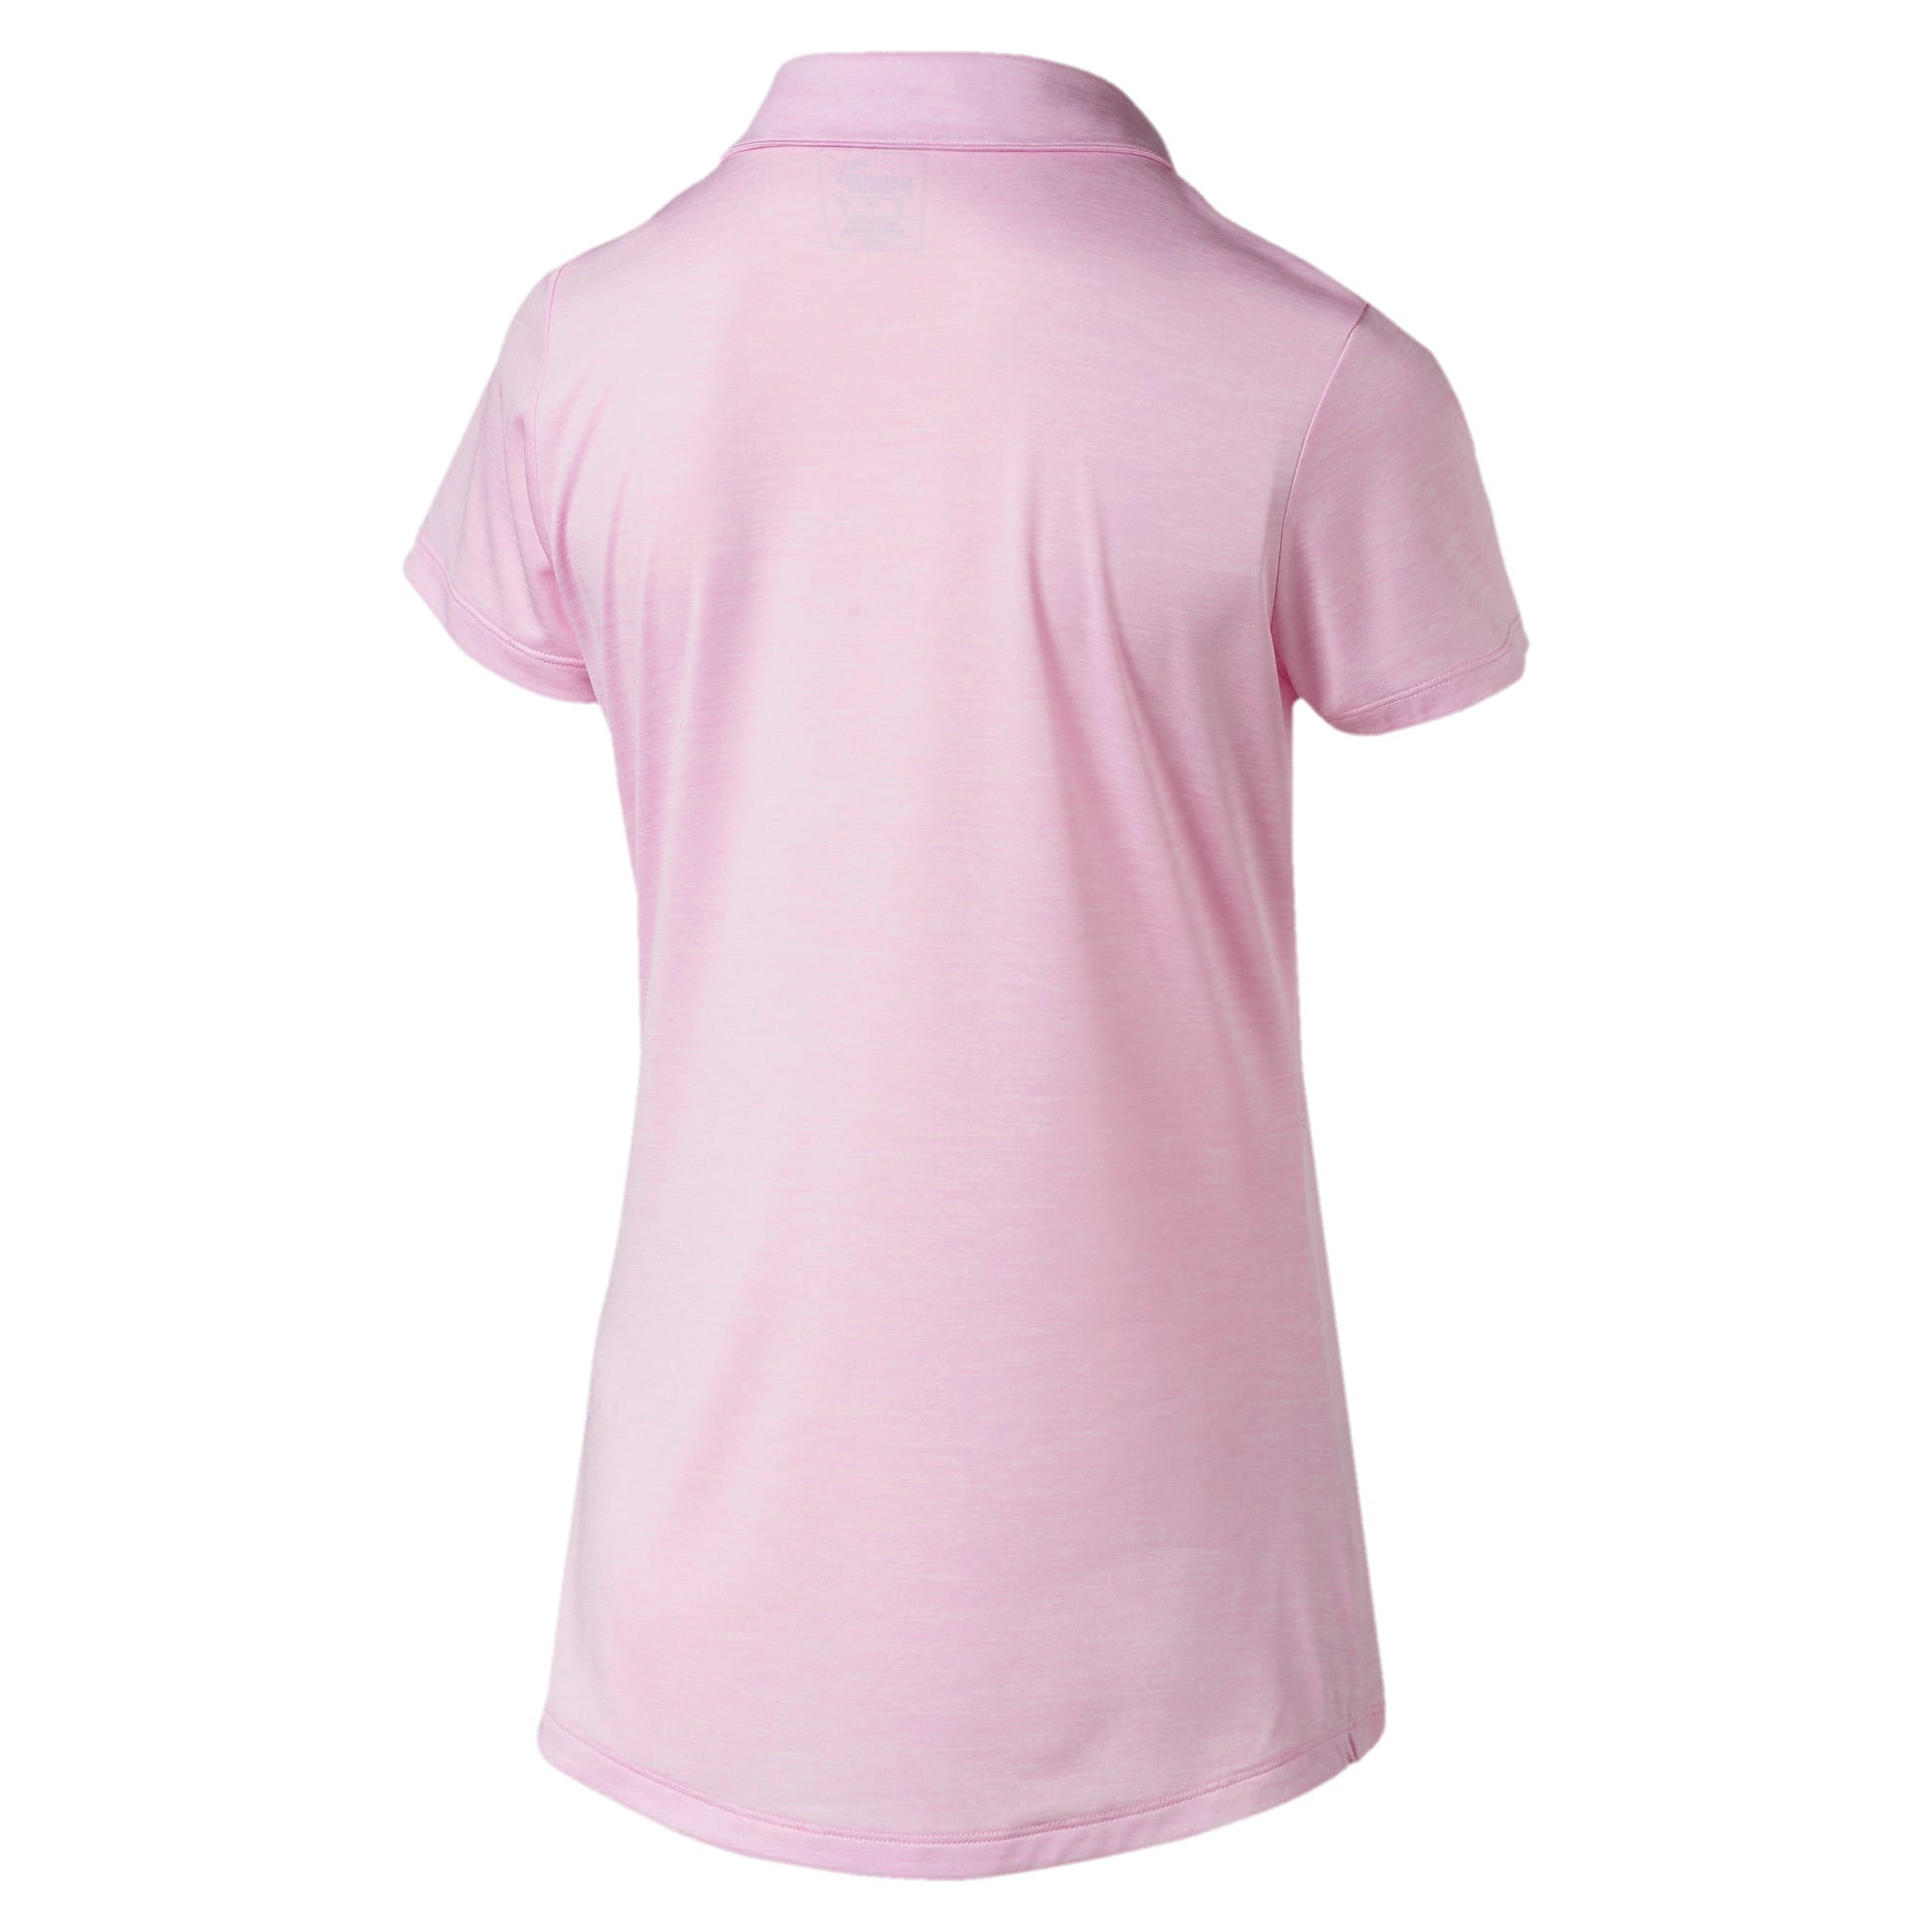 Thumbnail 5 of Super Soft Women's Golf Polo, Pale Pink Heather, medium